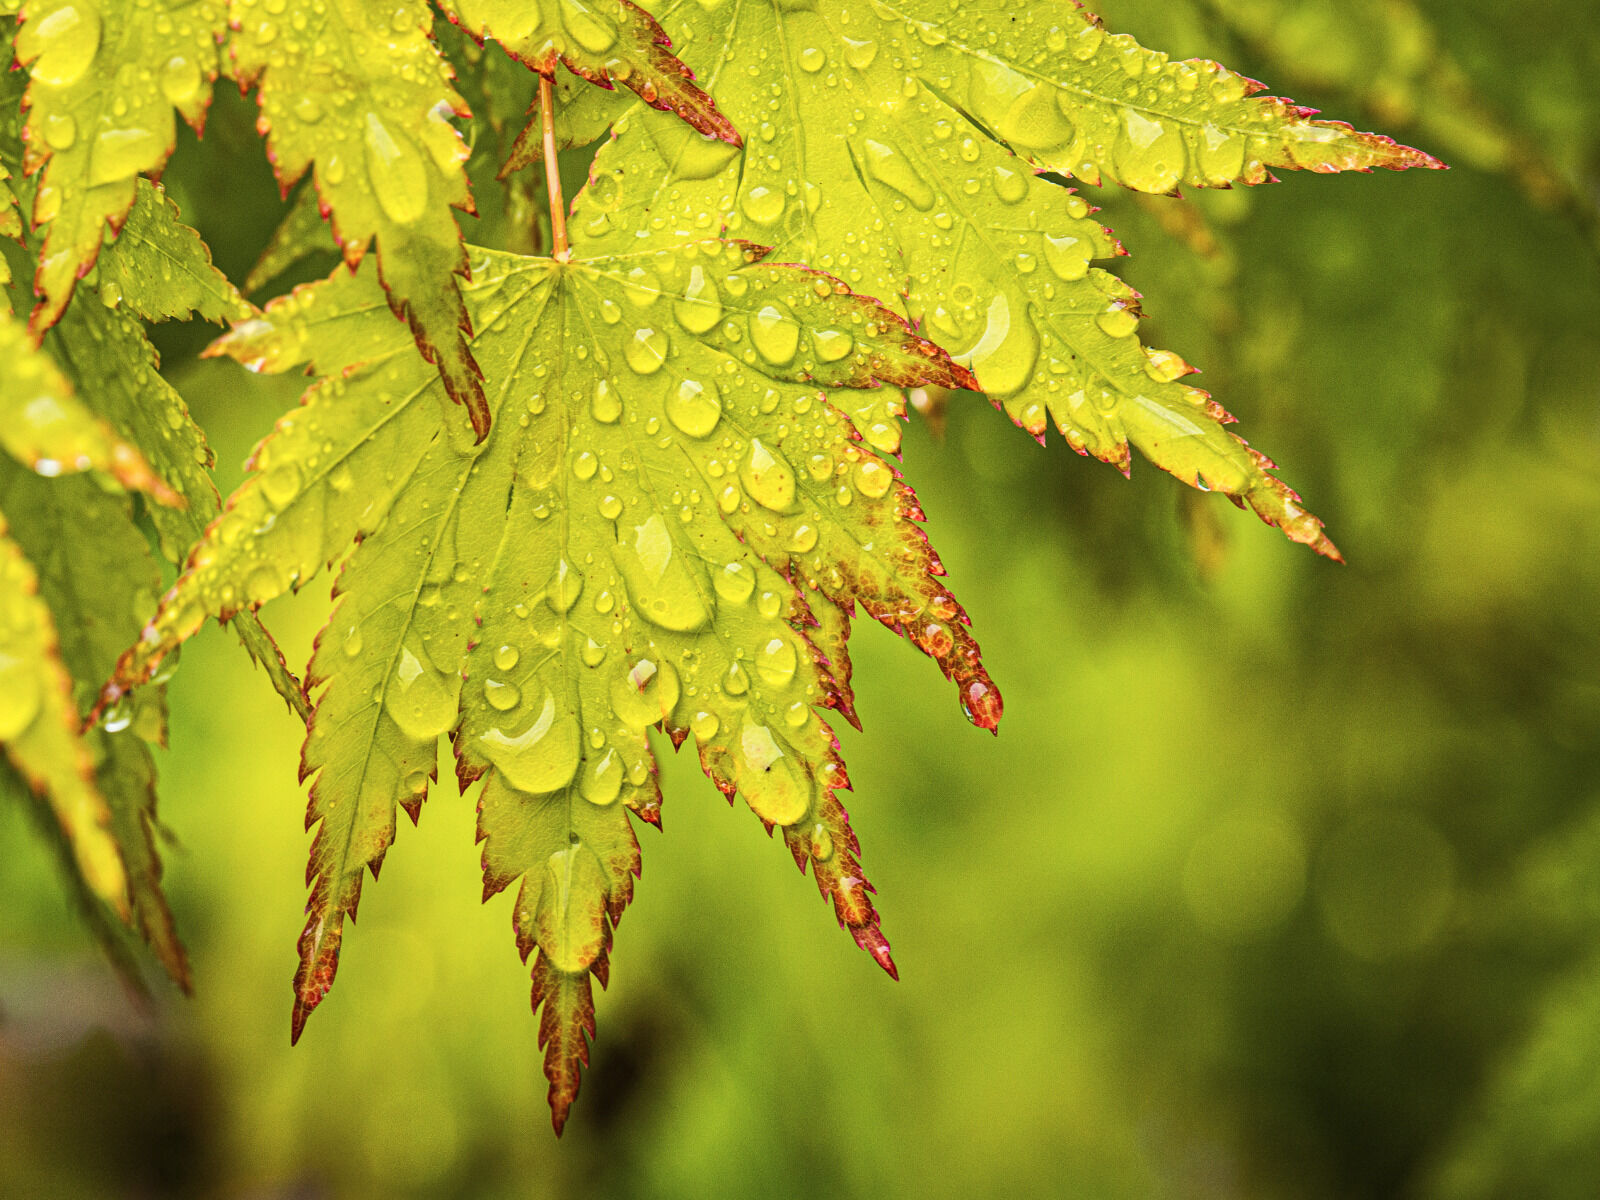 Group B - Commended - Rain on Acer - David Walters